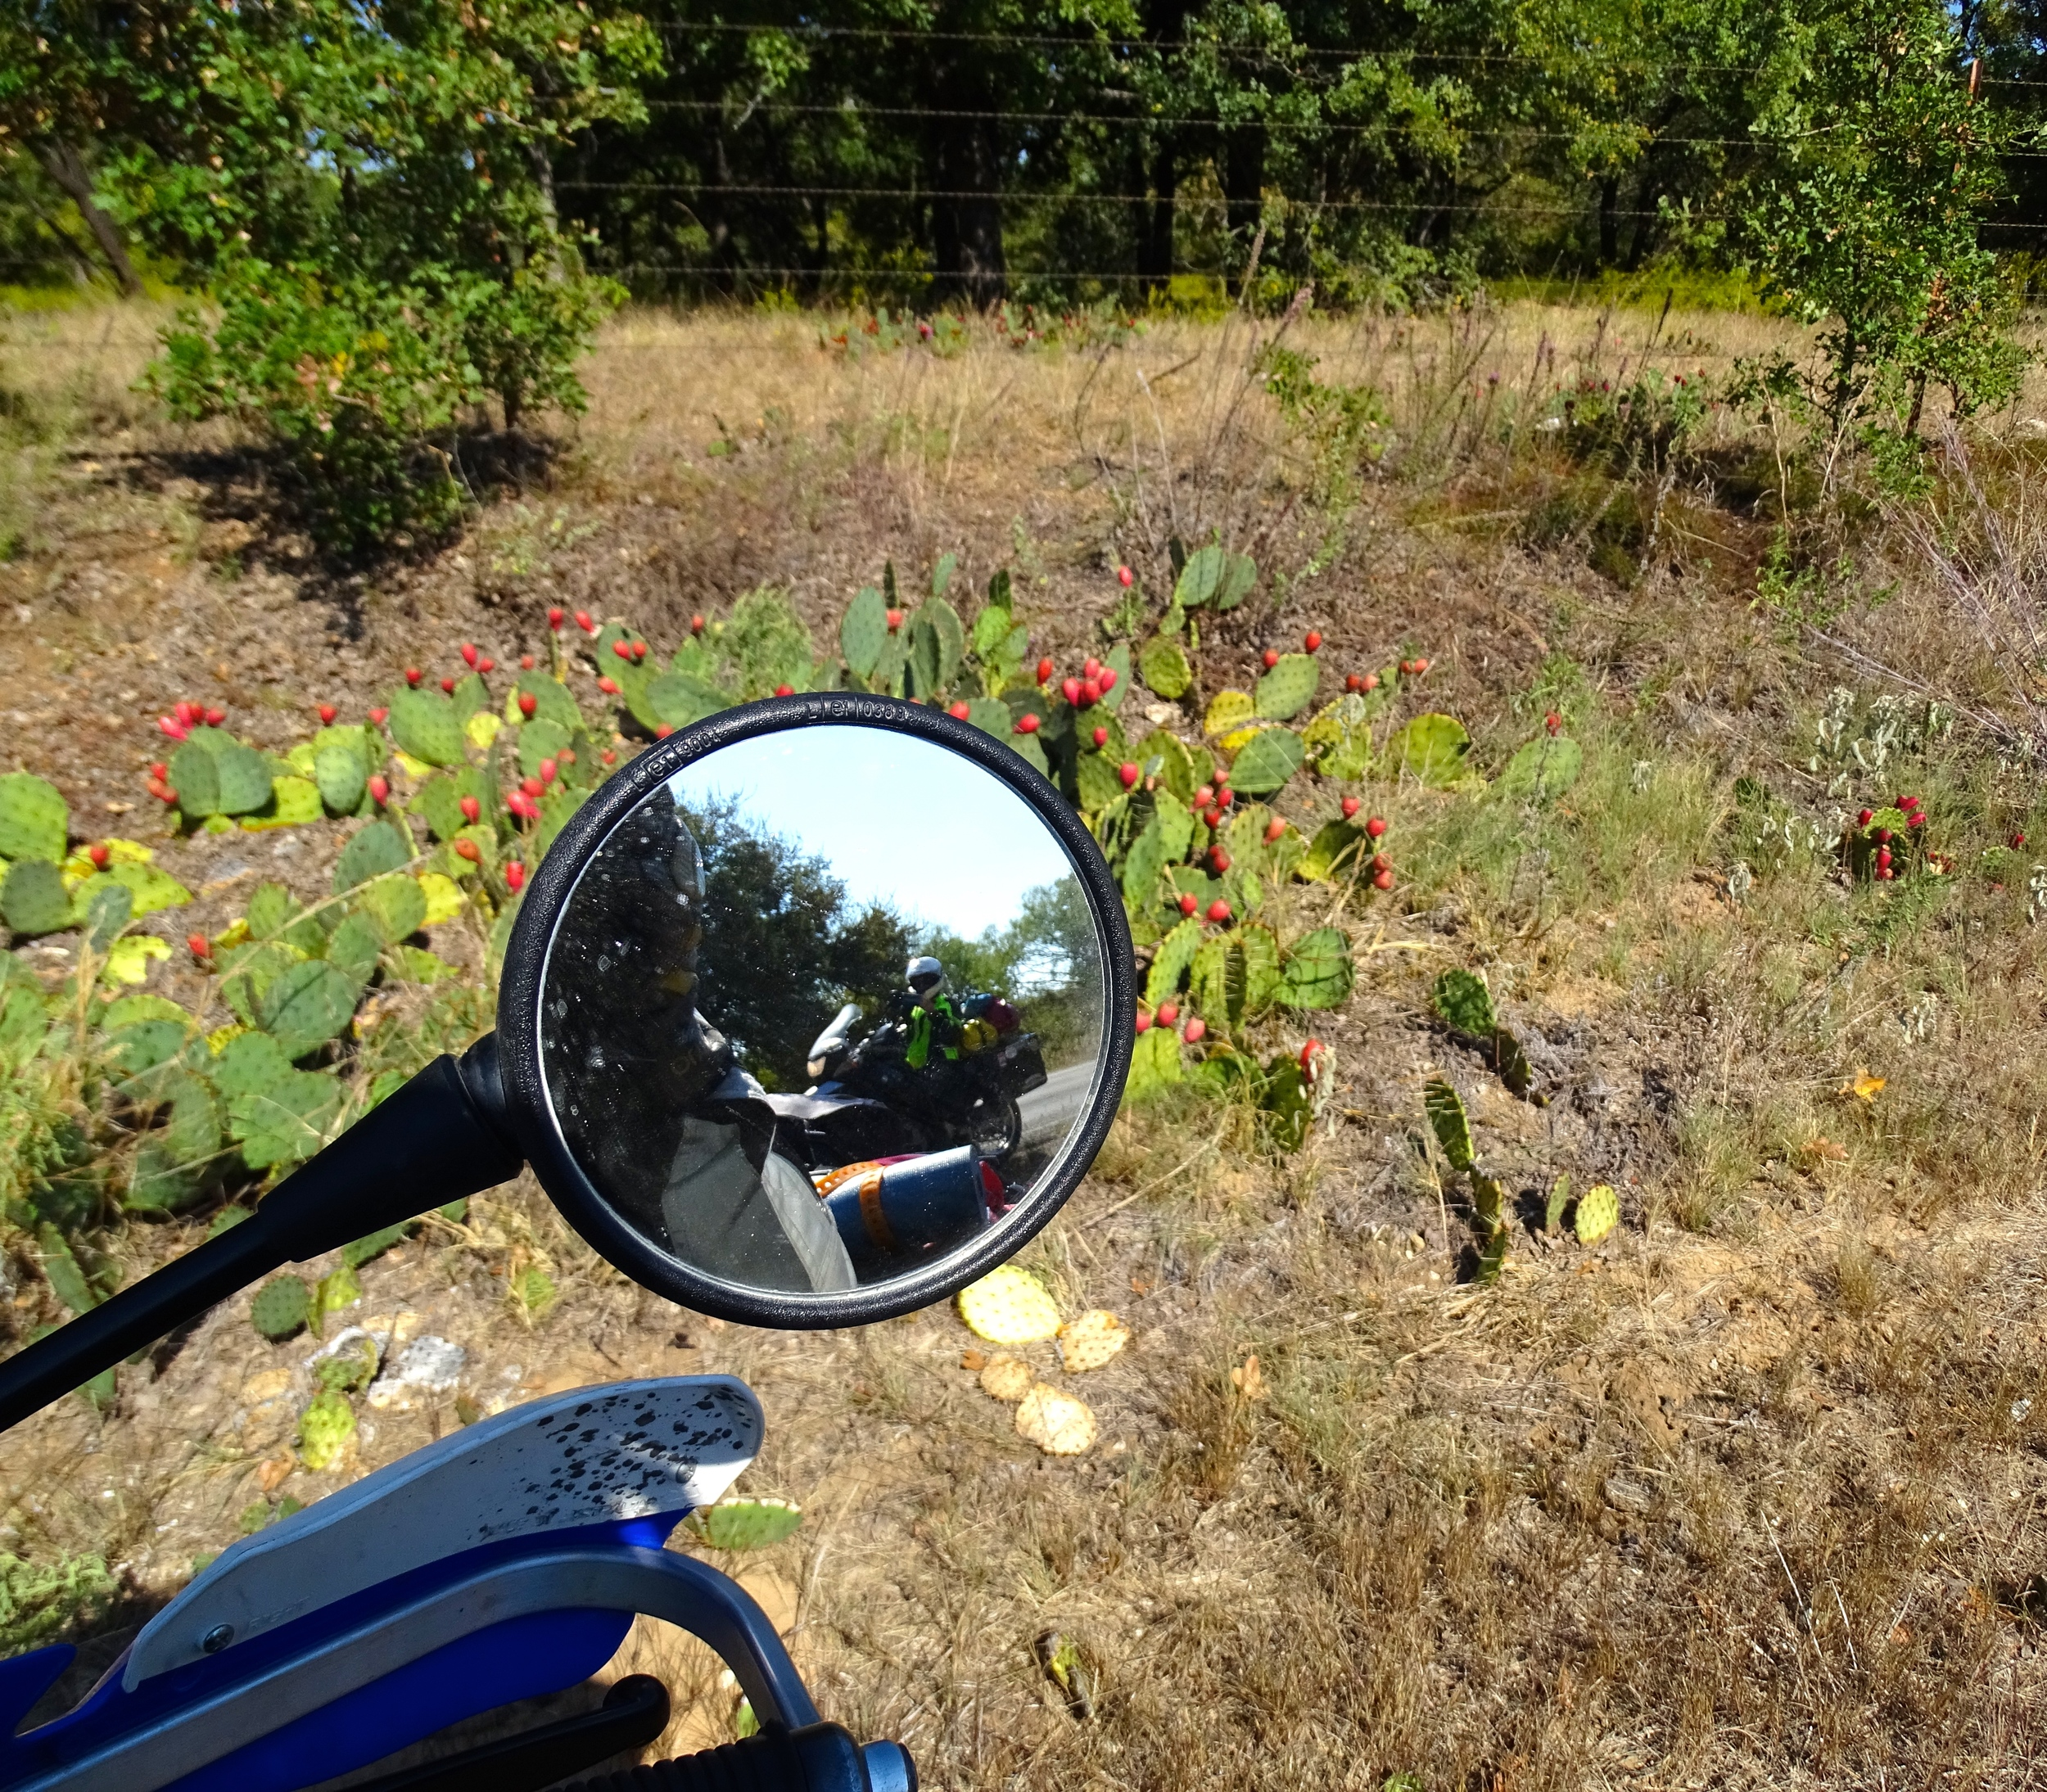 See more prickly pear harvest photos in the link at the bottom of this post.